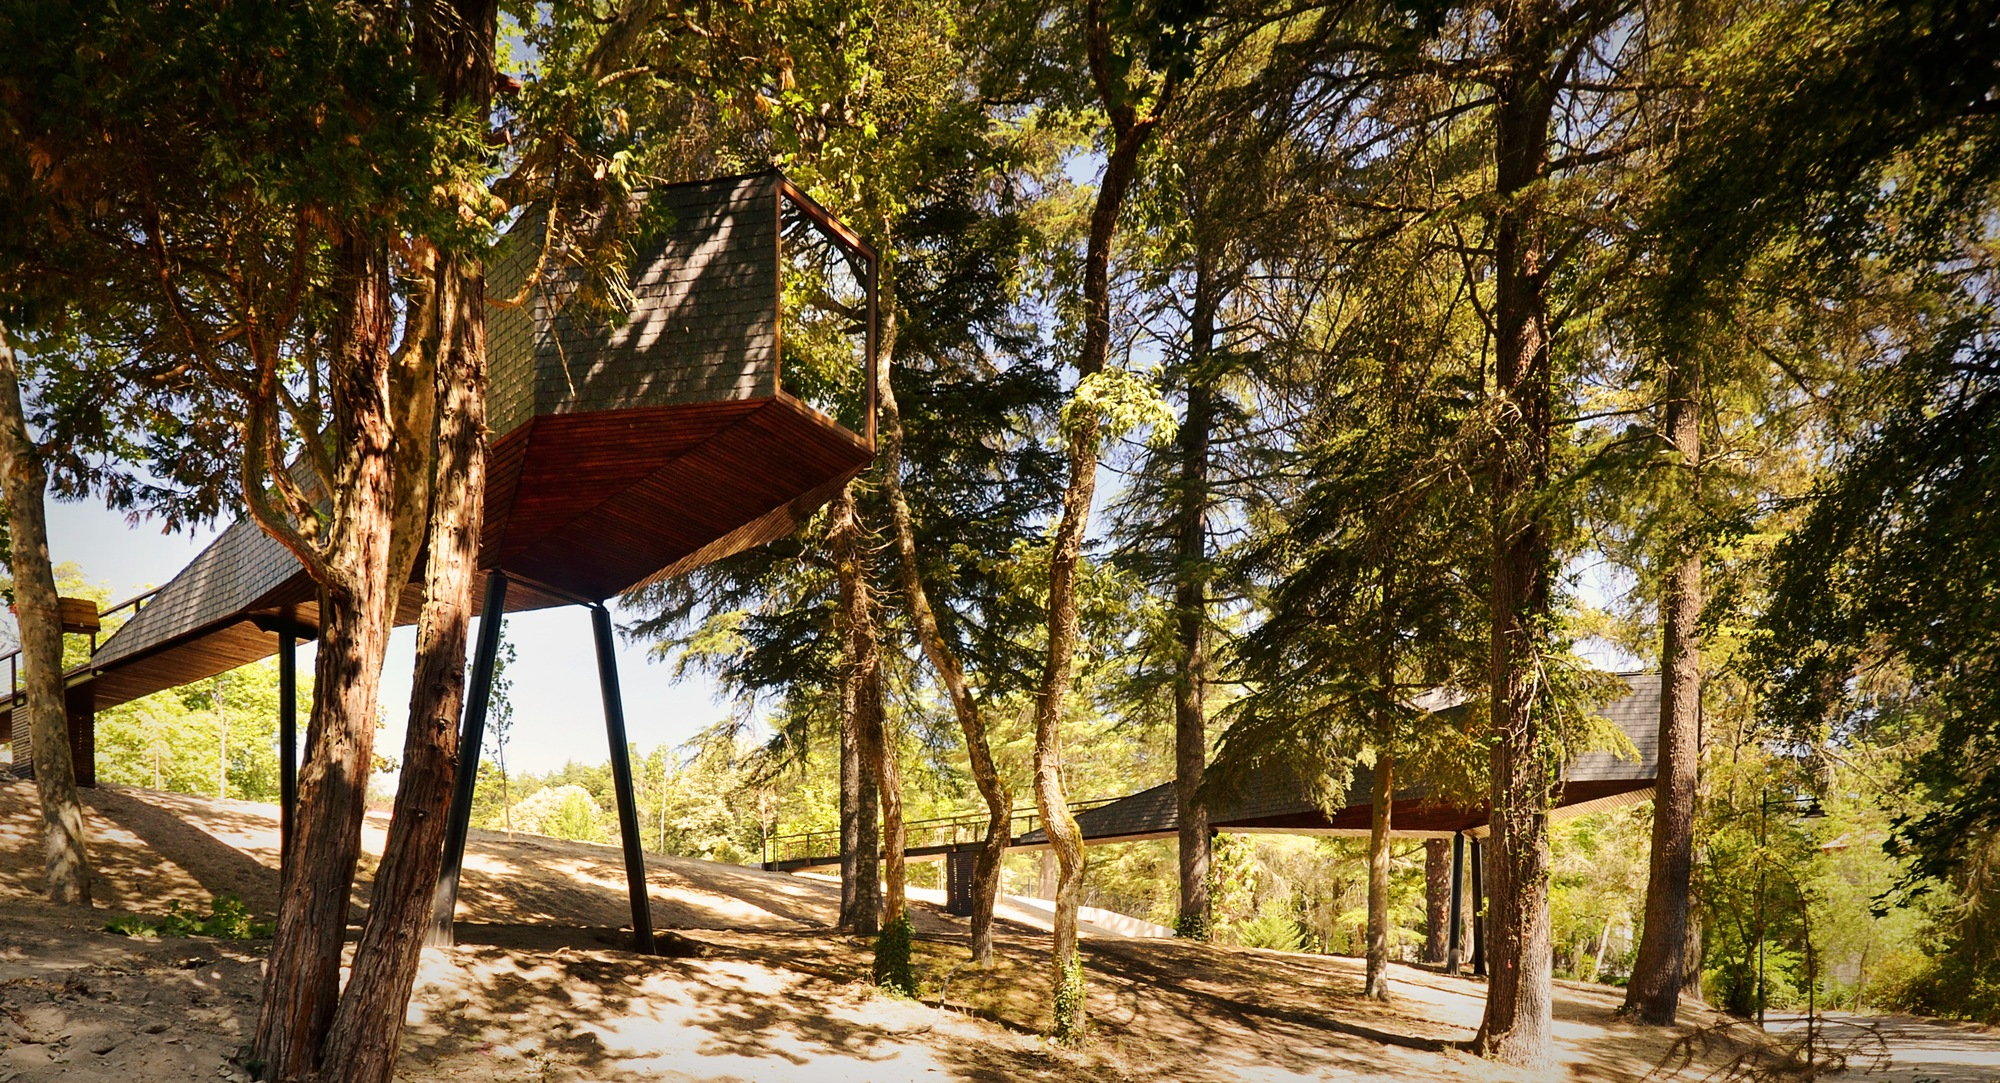 Tree Snake House is a Lofted Luxury Getaway by Pedras Salgadas Park, Luís and Tiago Rebelo de Andrade